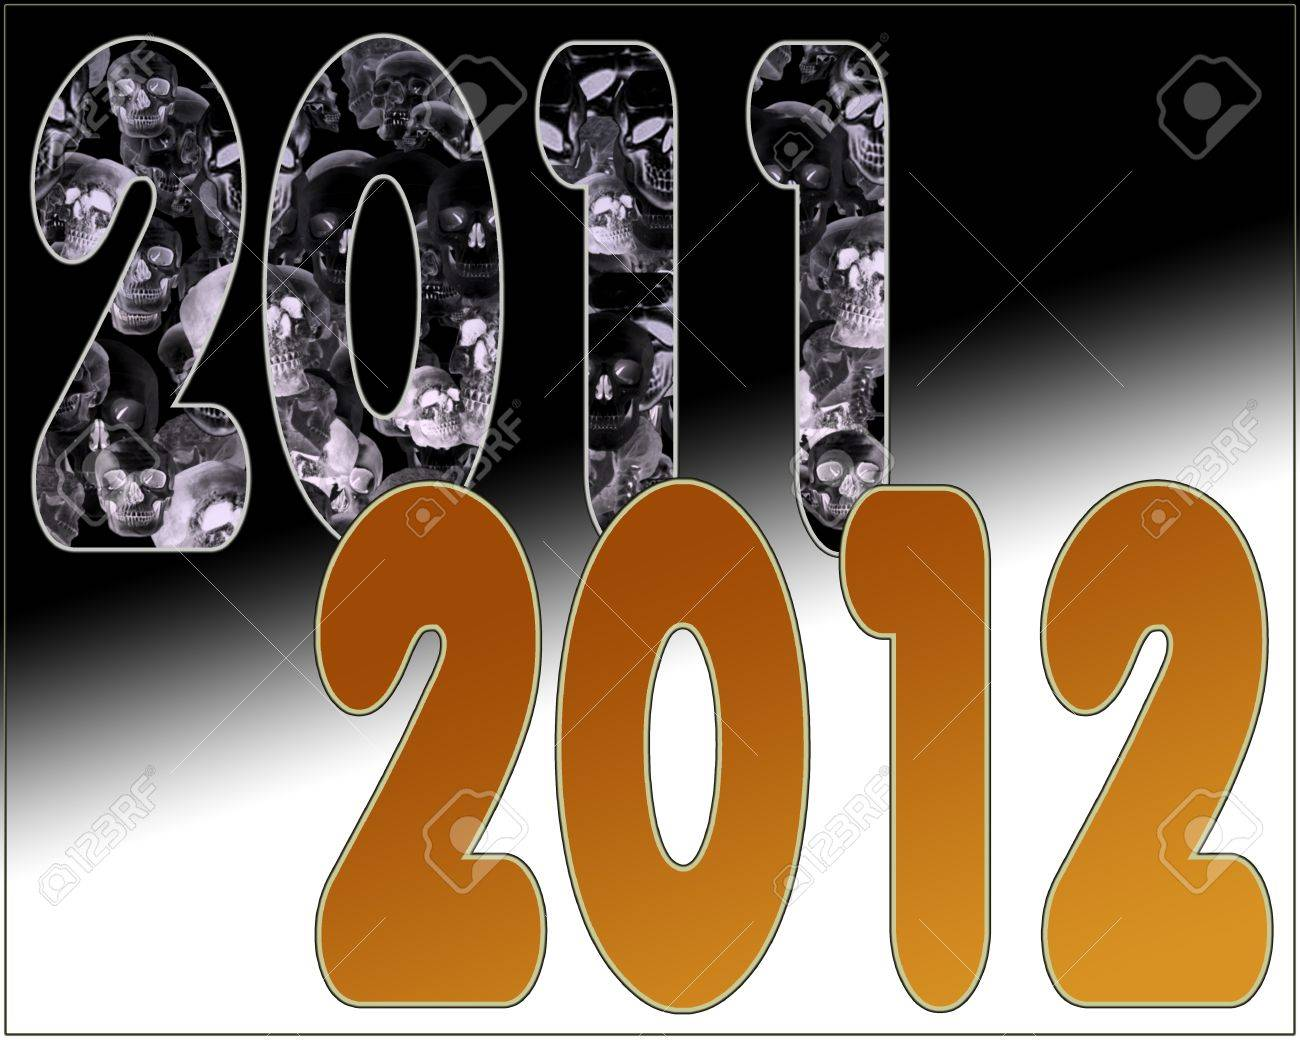 2011 End of the Bad Fresh Start of Golden Year 2012 Stock Photo - 10544329